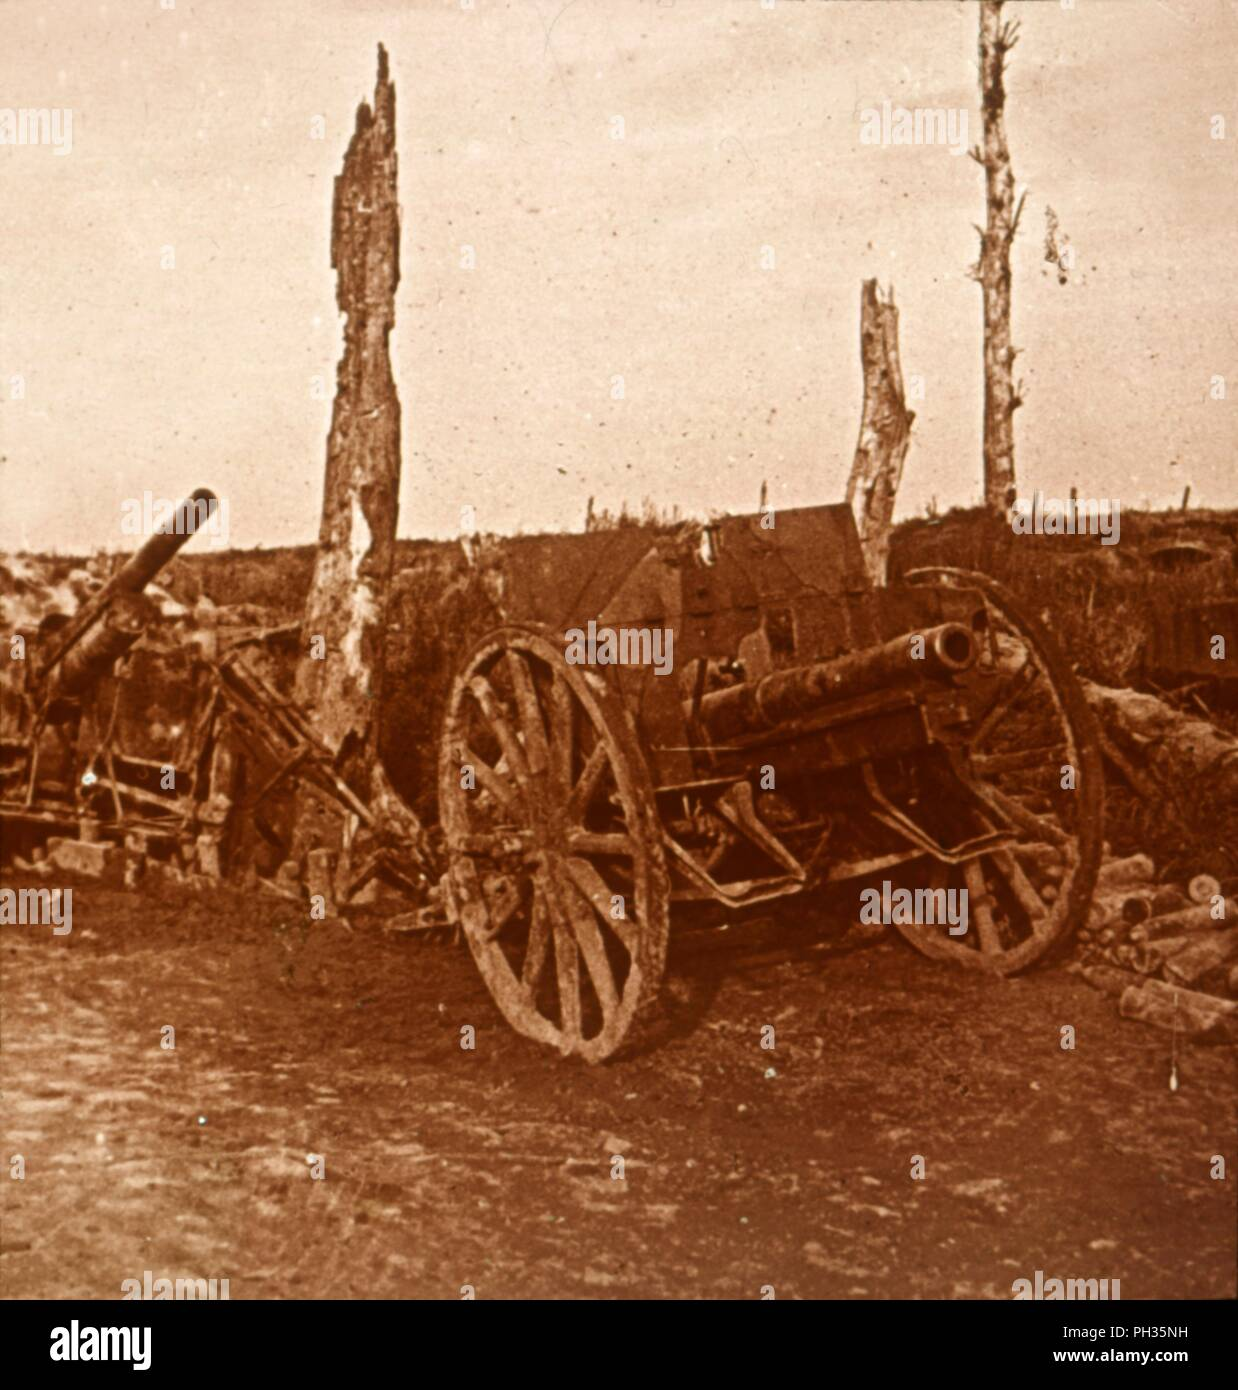 Abandoned 'enemy' [German?] cannons, c1914-c1918. Photograph from a series of glass plate stereoview images depicting scenes from World War I (1914-1918). - Stock Image